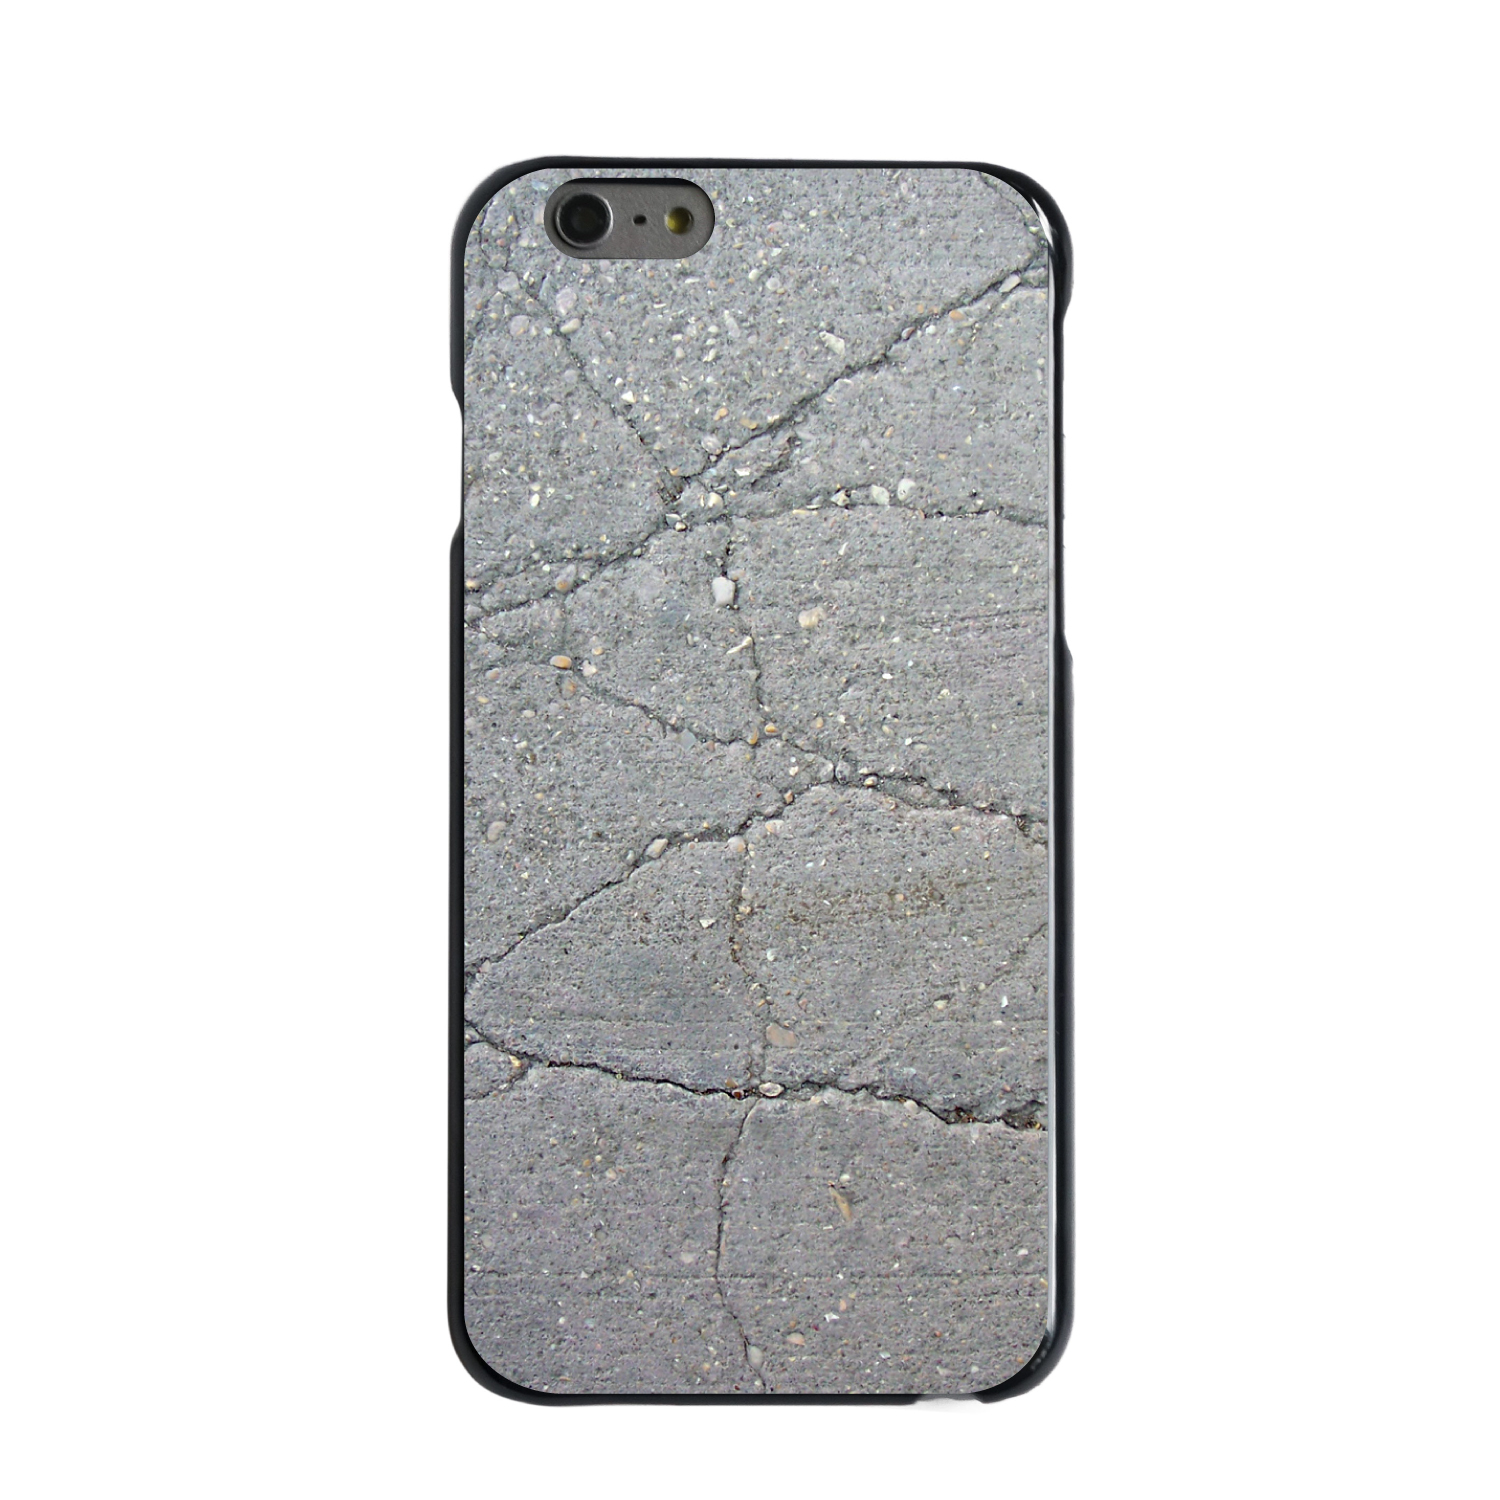 "CUSTOM Black Hard Plastic Snap-On Case for Apple iPhone 7 PLUS / 8 PLUS (5.5"" Screen) - Grey Cracked Concrete"